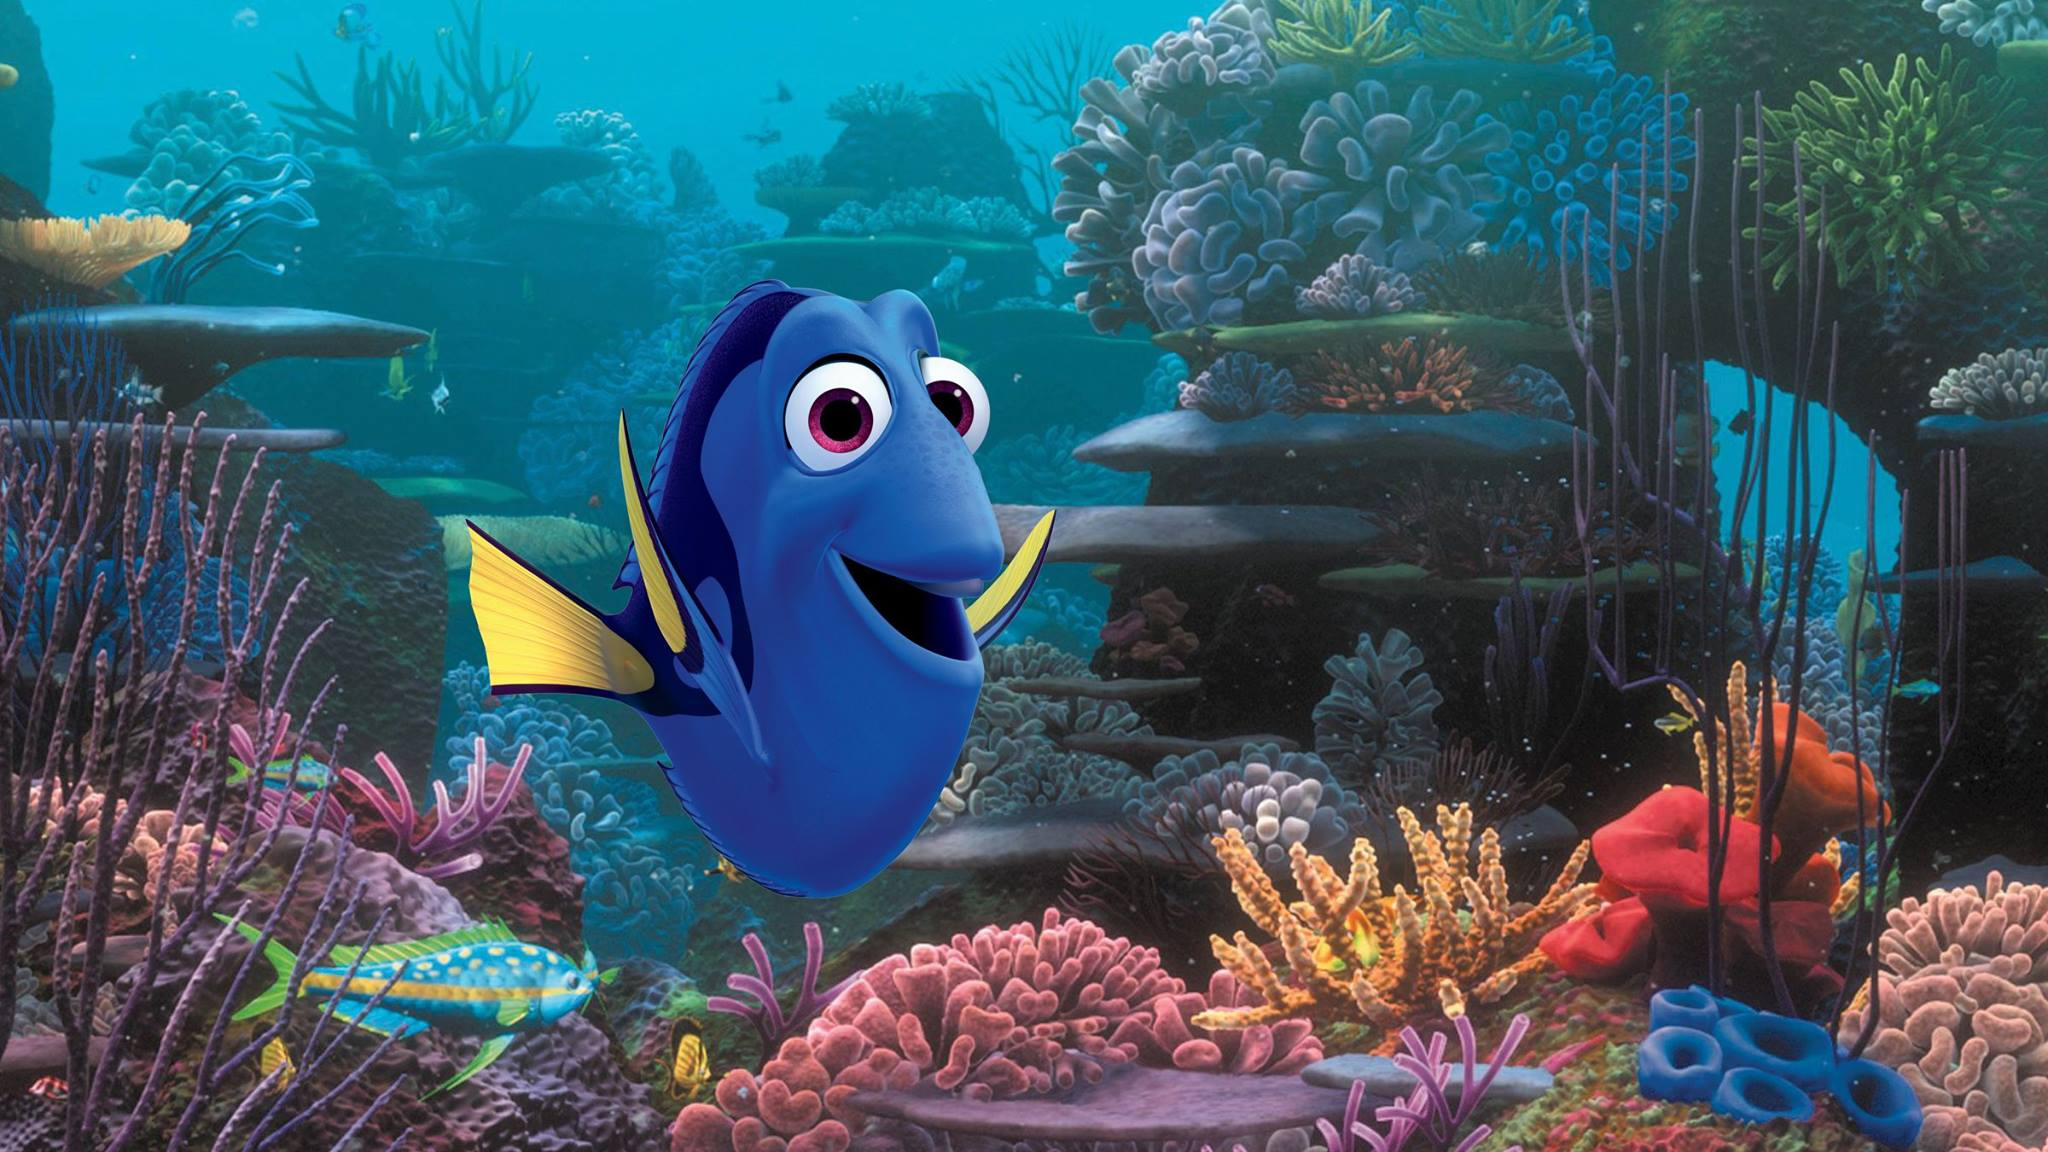 Finding dory movie photos